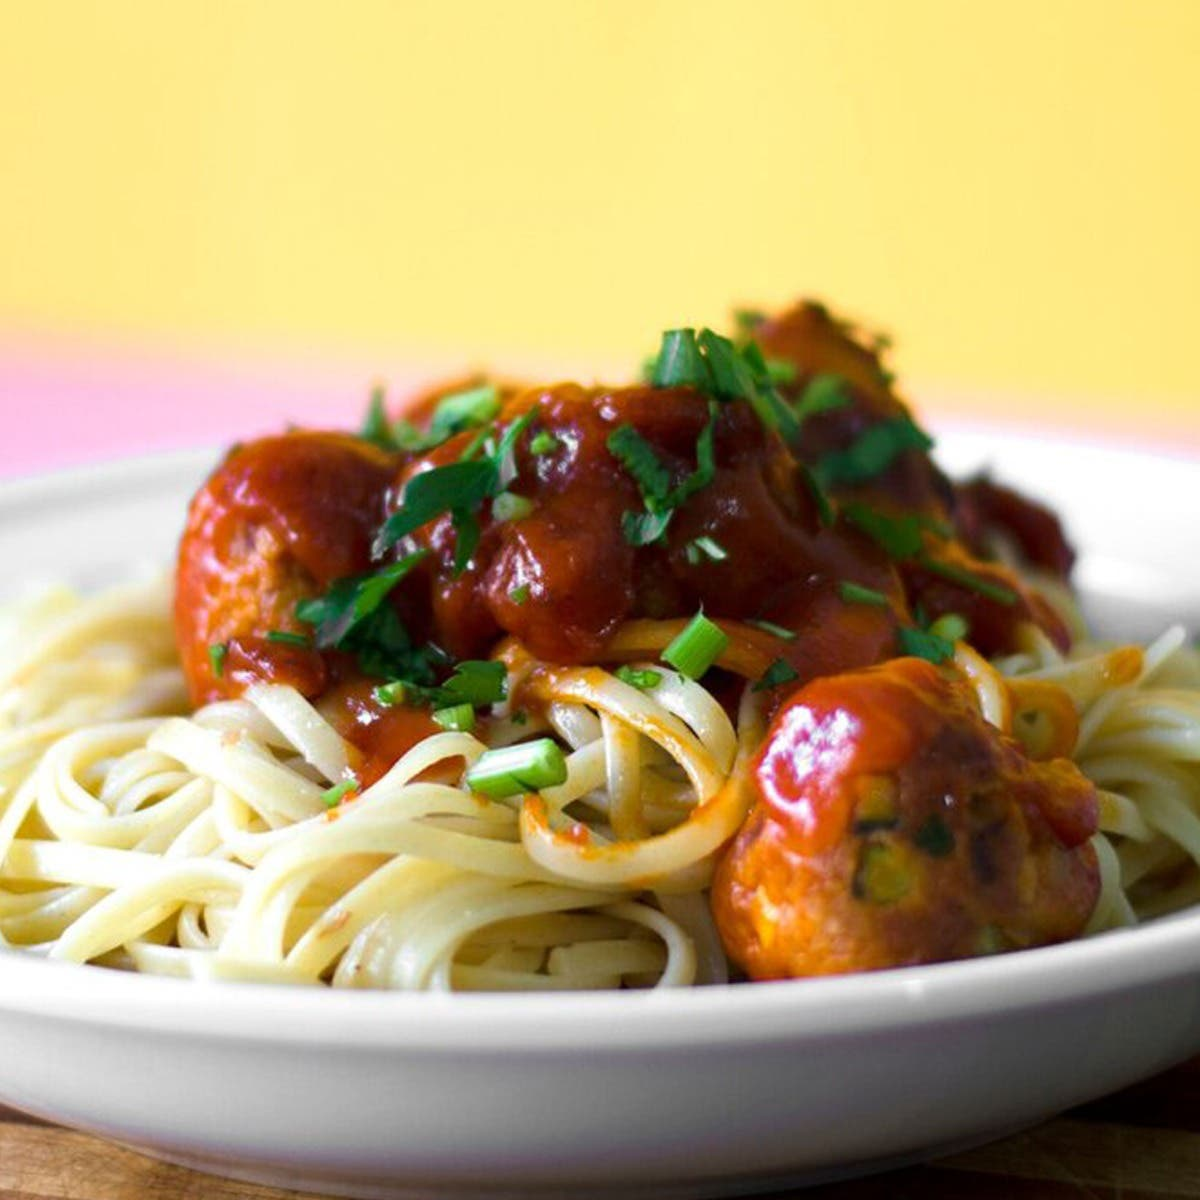 spaghetti and homemade meatballs